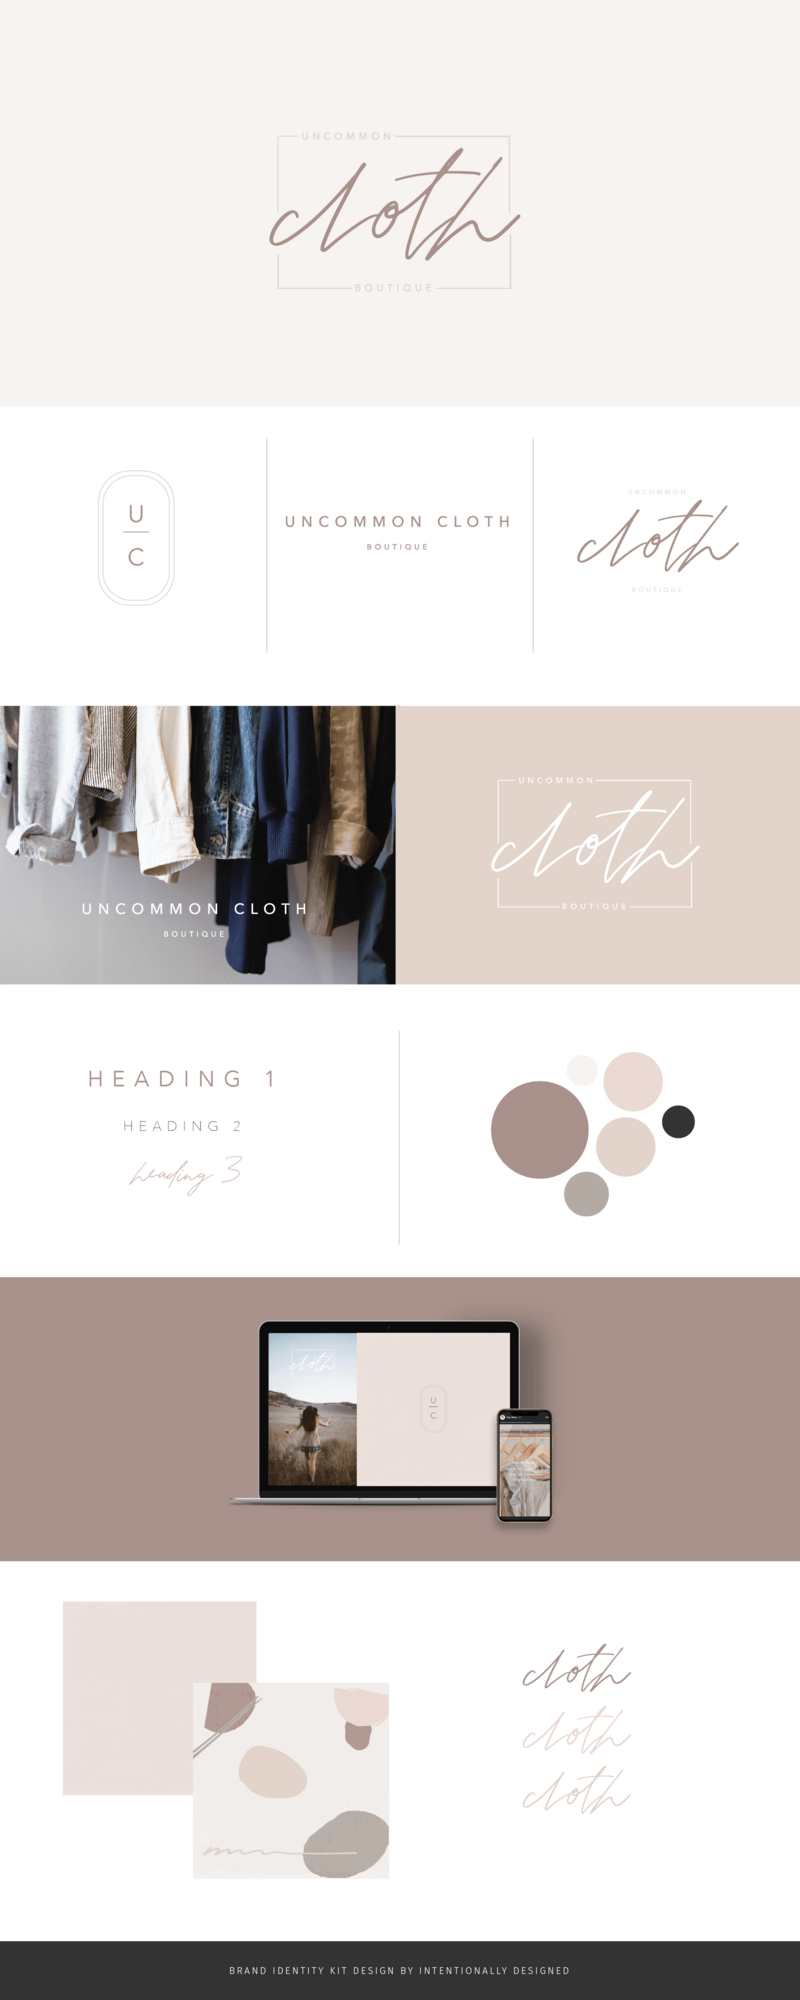 Cloth brand identity kit